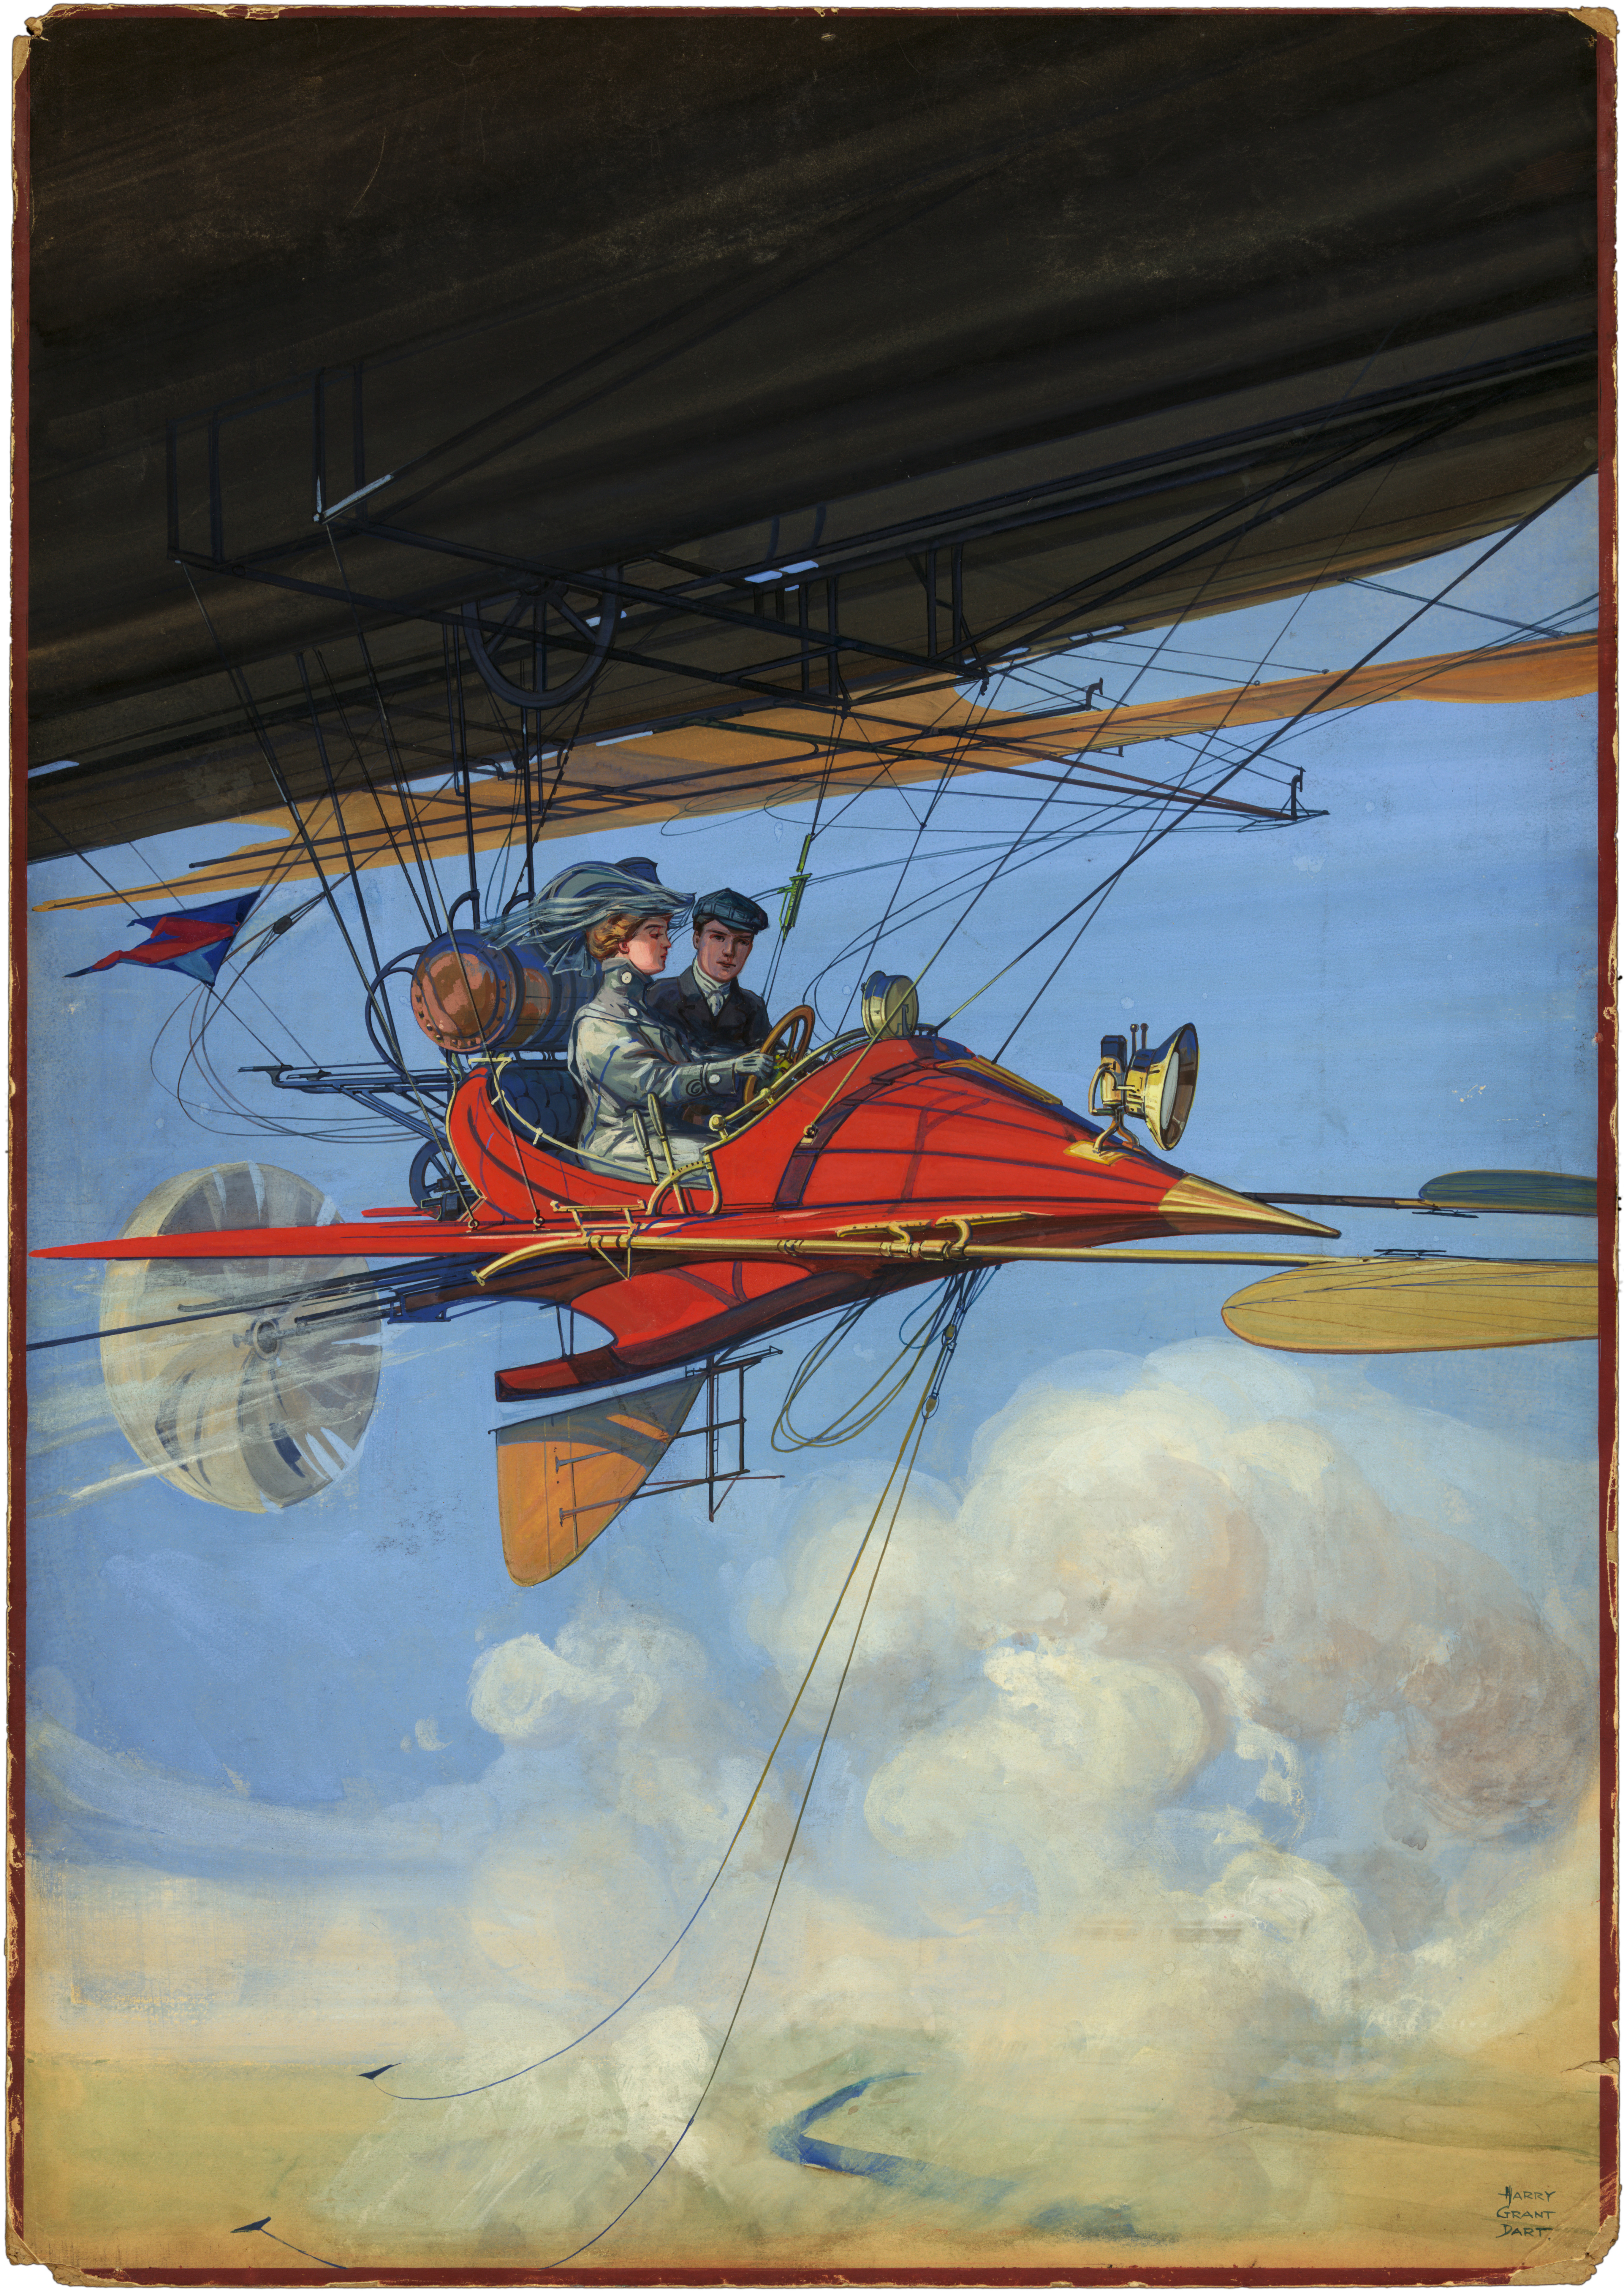 Cover illustration by Harry Grant Dart for the magazine ''[[The All-Story